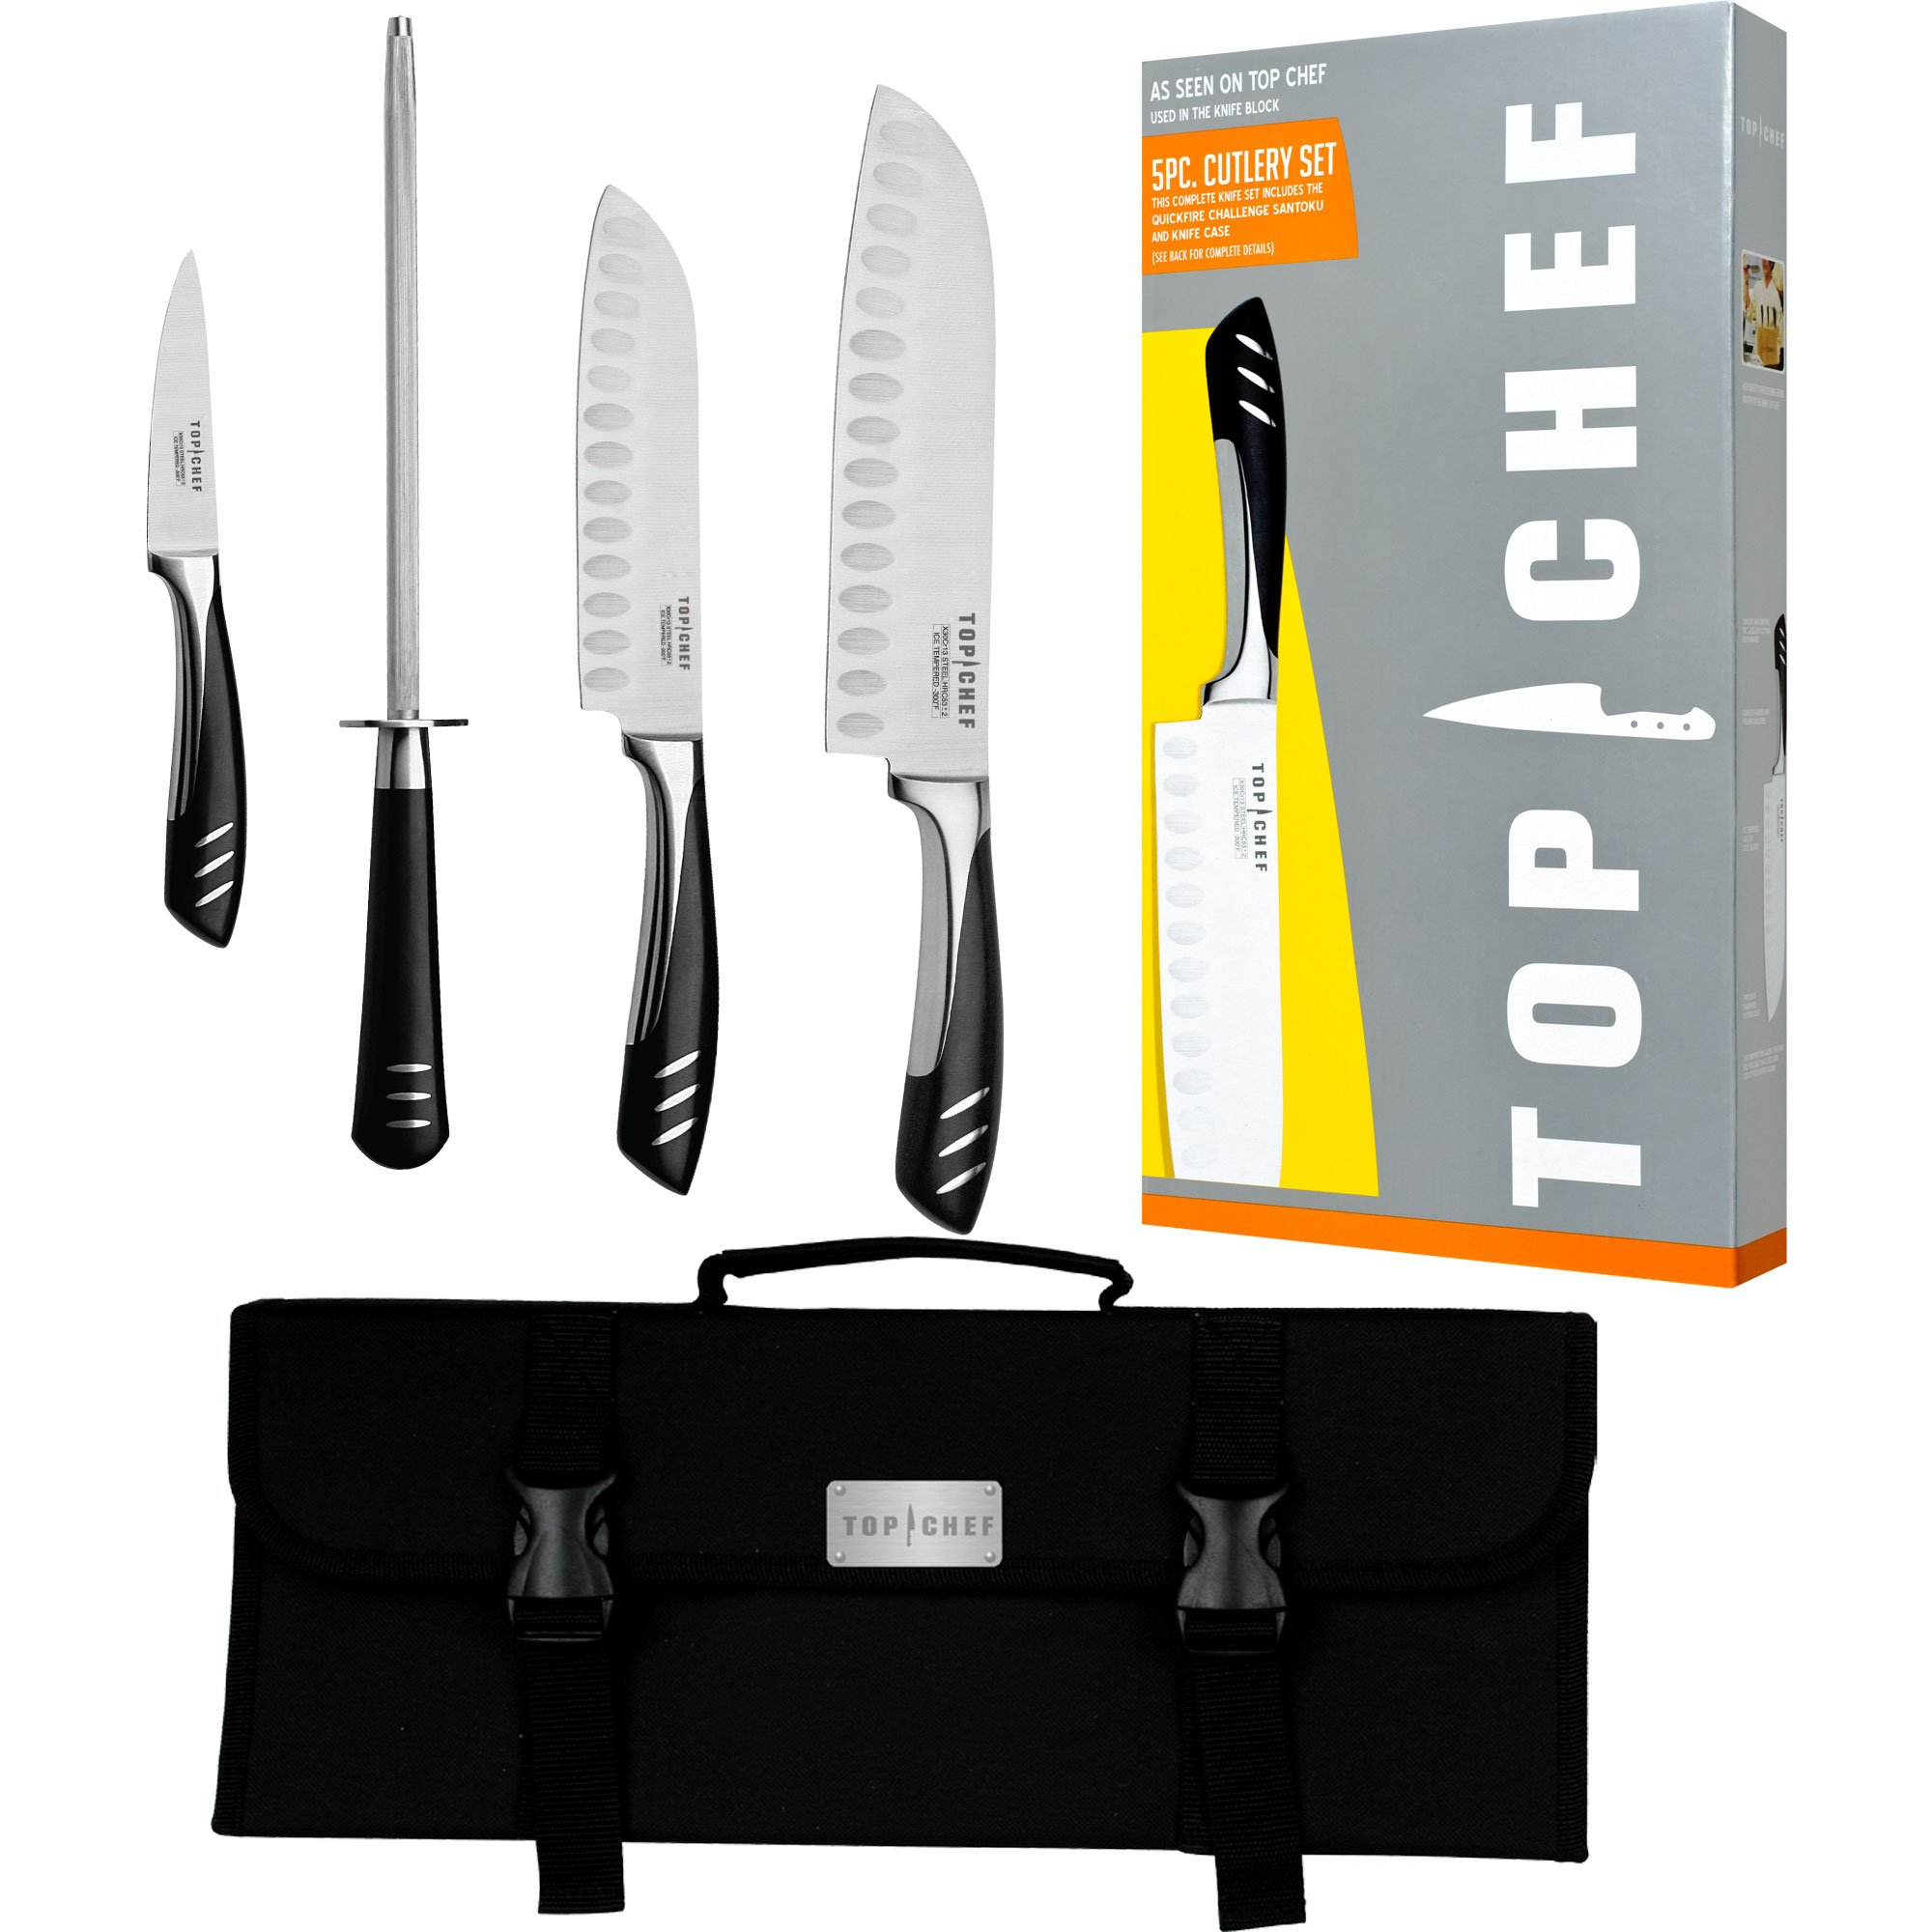 Top Chef 5-Piece Stainless Steel Knife Set, Portable by Topchef (Image #3)